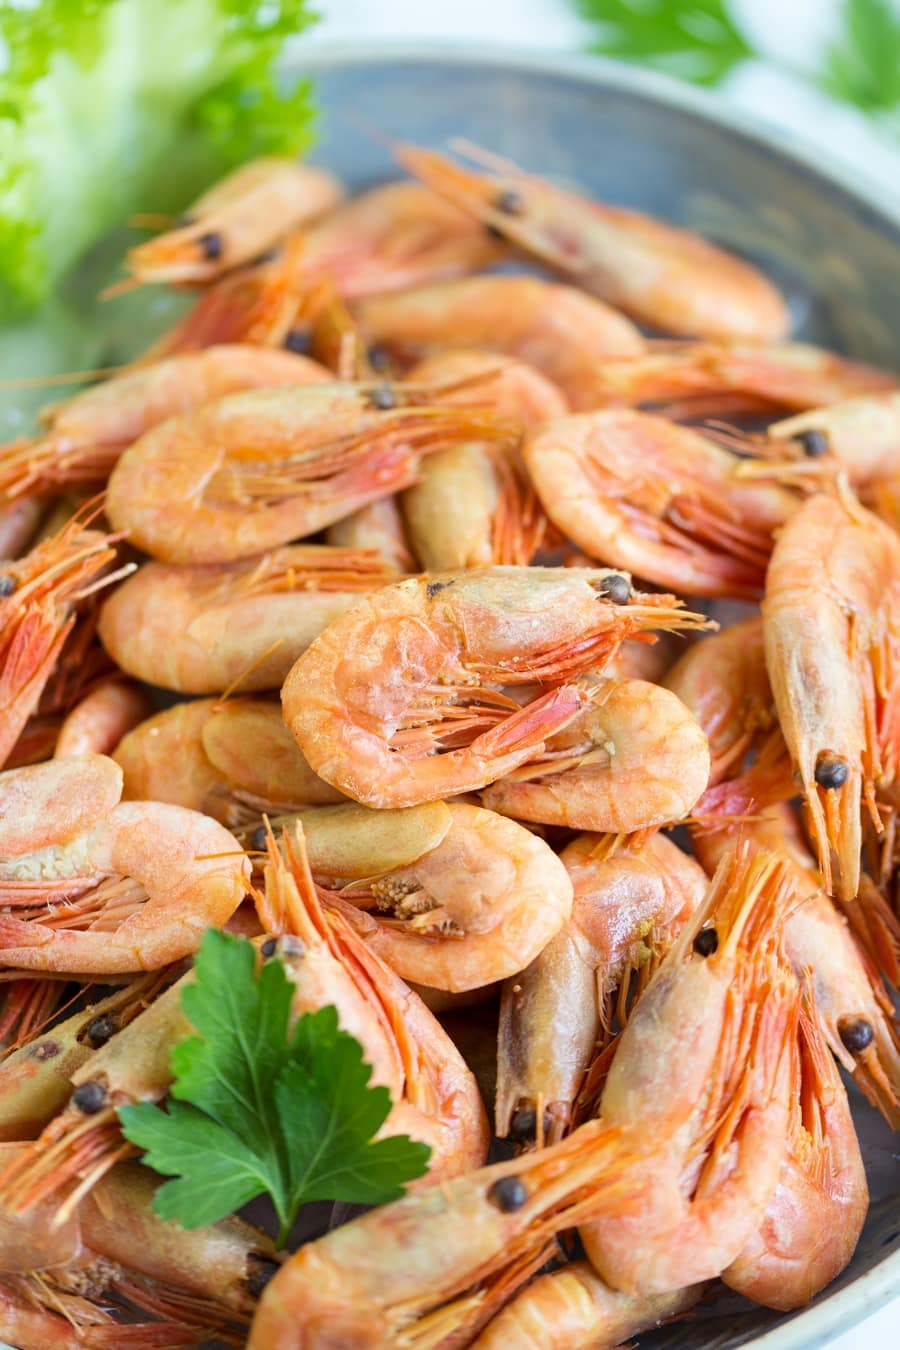 Closeup of smoked shrimps in a bowl.